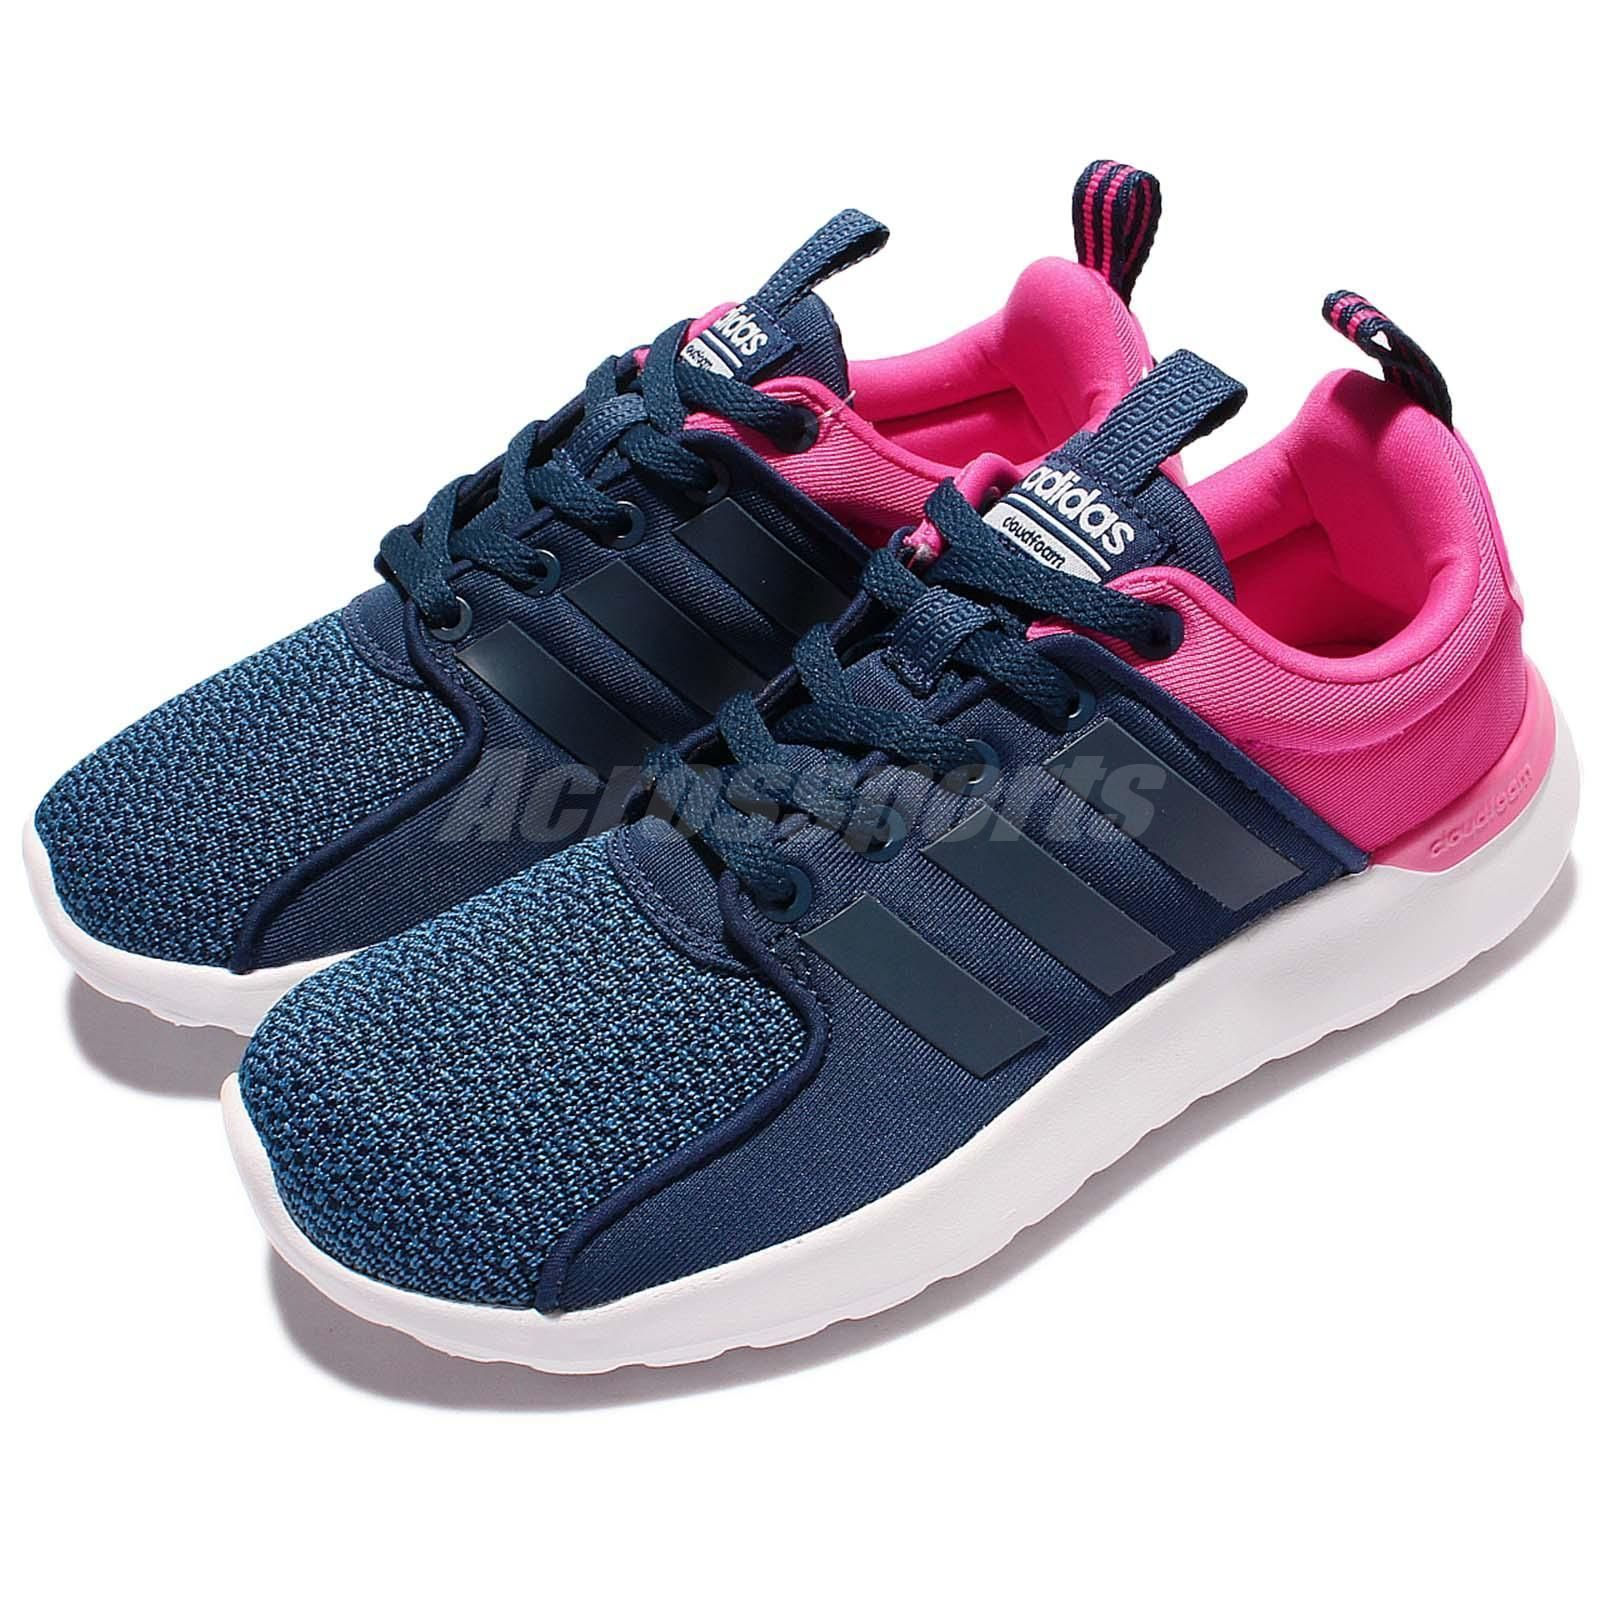 72898d95153 adidas Cloudfoam Lite Racer W Blue Pink Women Running Shoes Sneakers AW4025